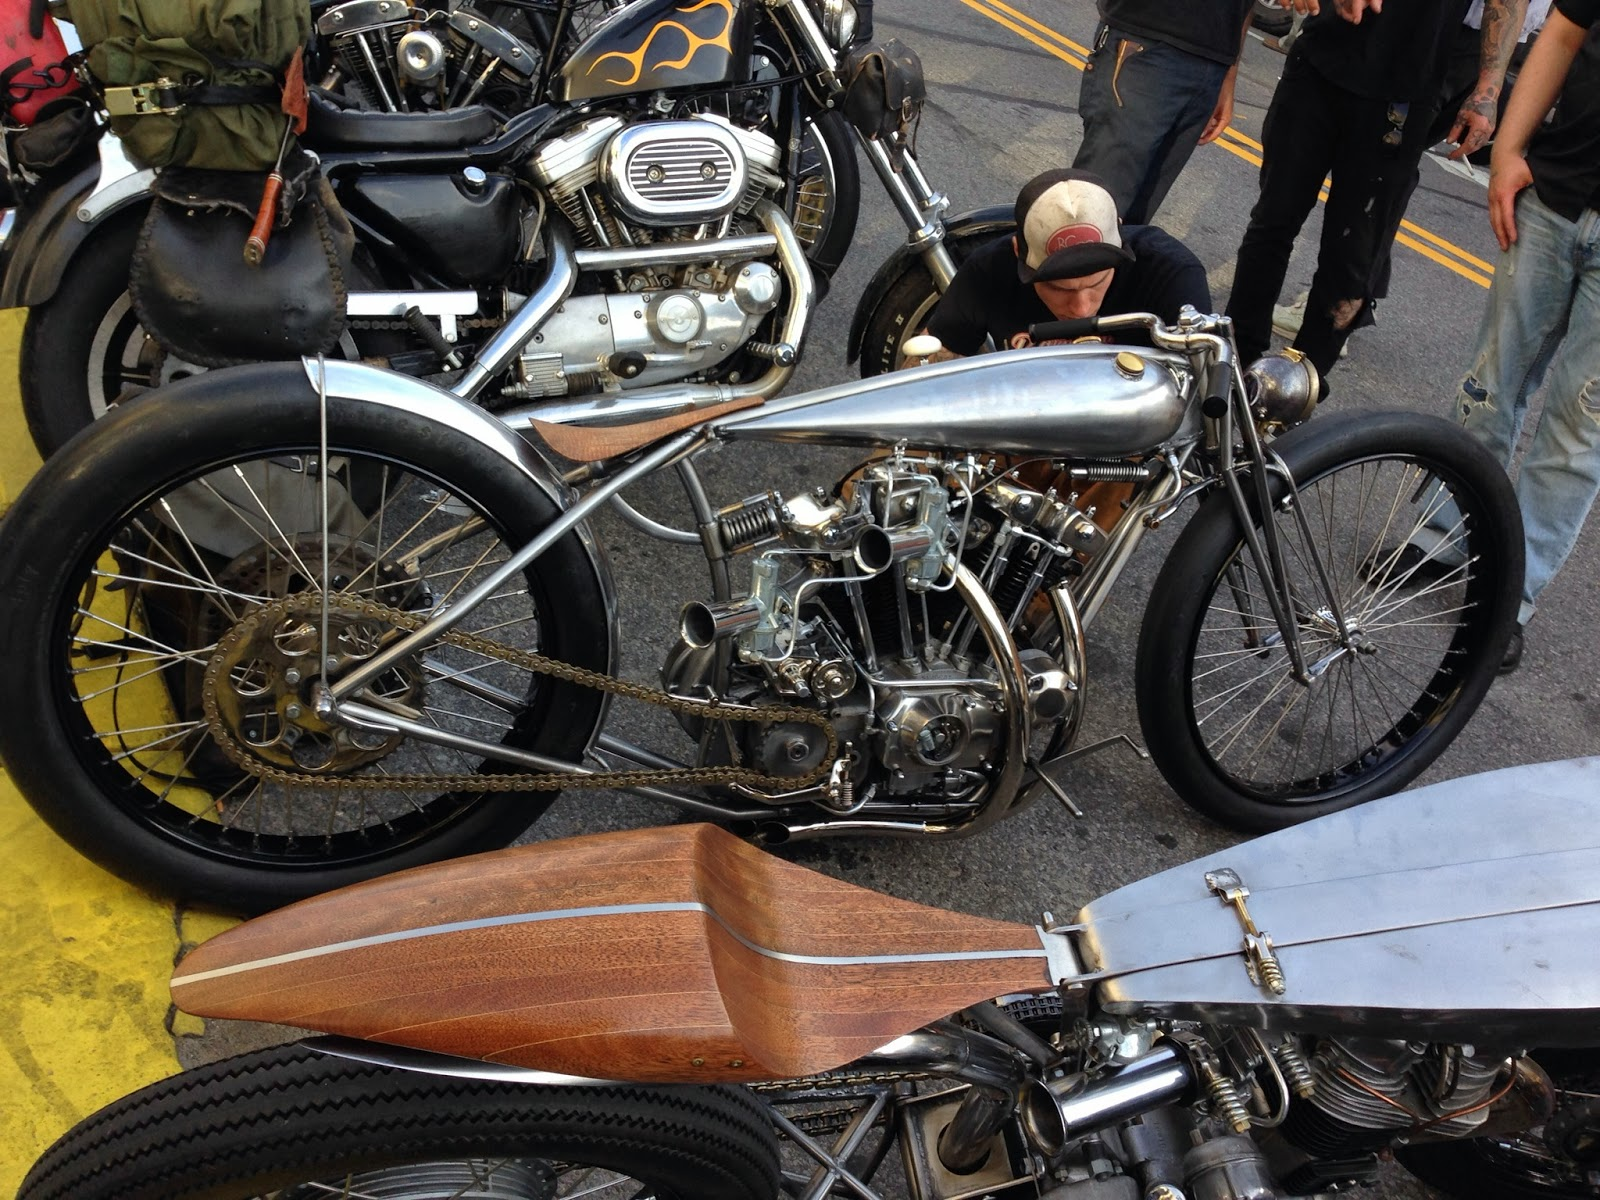 Incredible Retro Custom Cafe Racers at the Brooklyn Invitational Custom Bike Show 2013